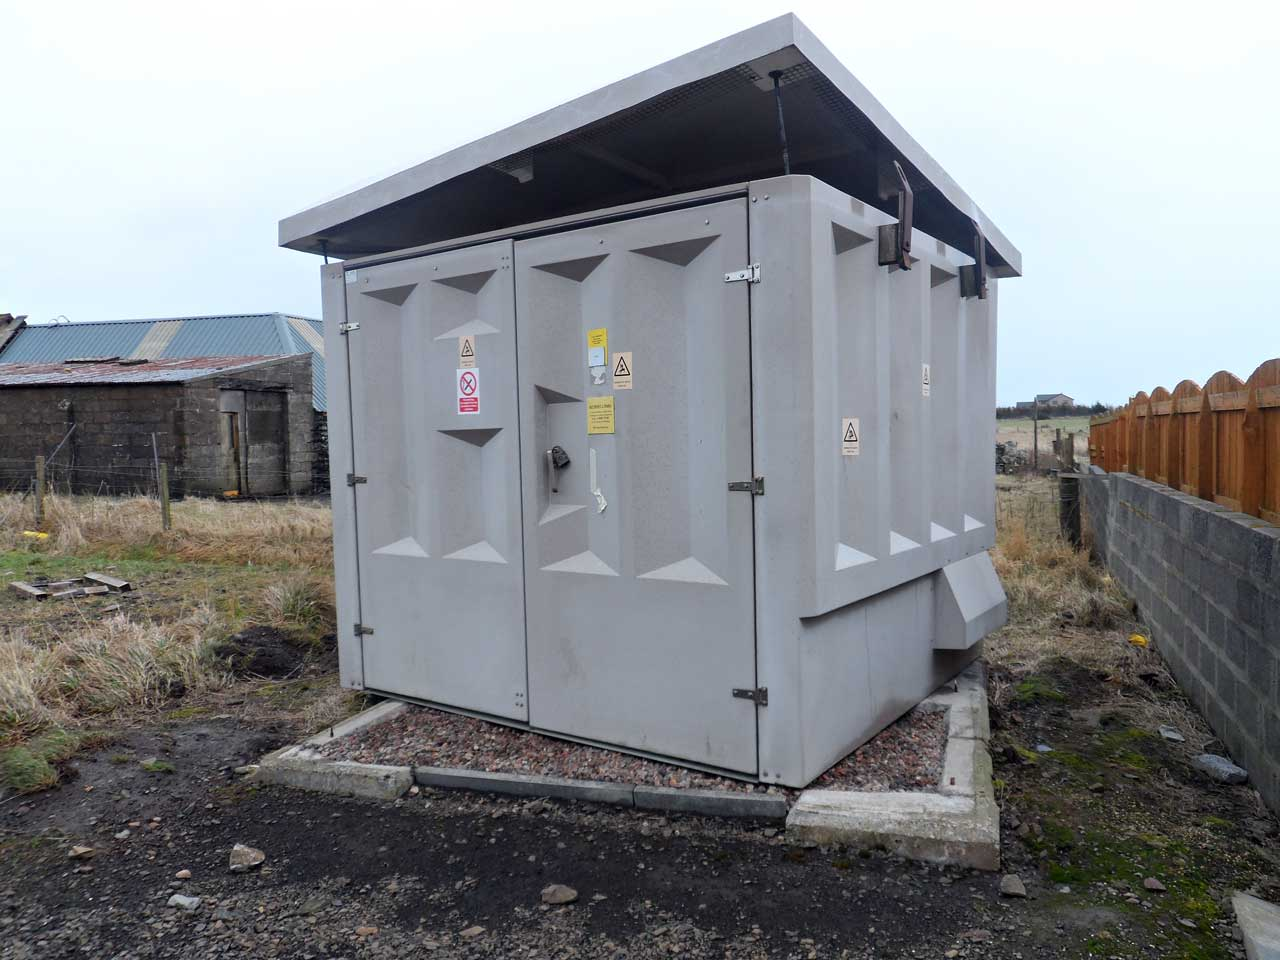 Photo: Electricity Sub-Station Blown off Base In Wick